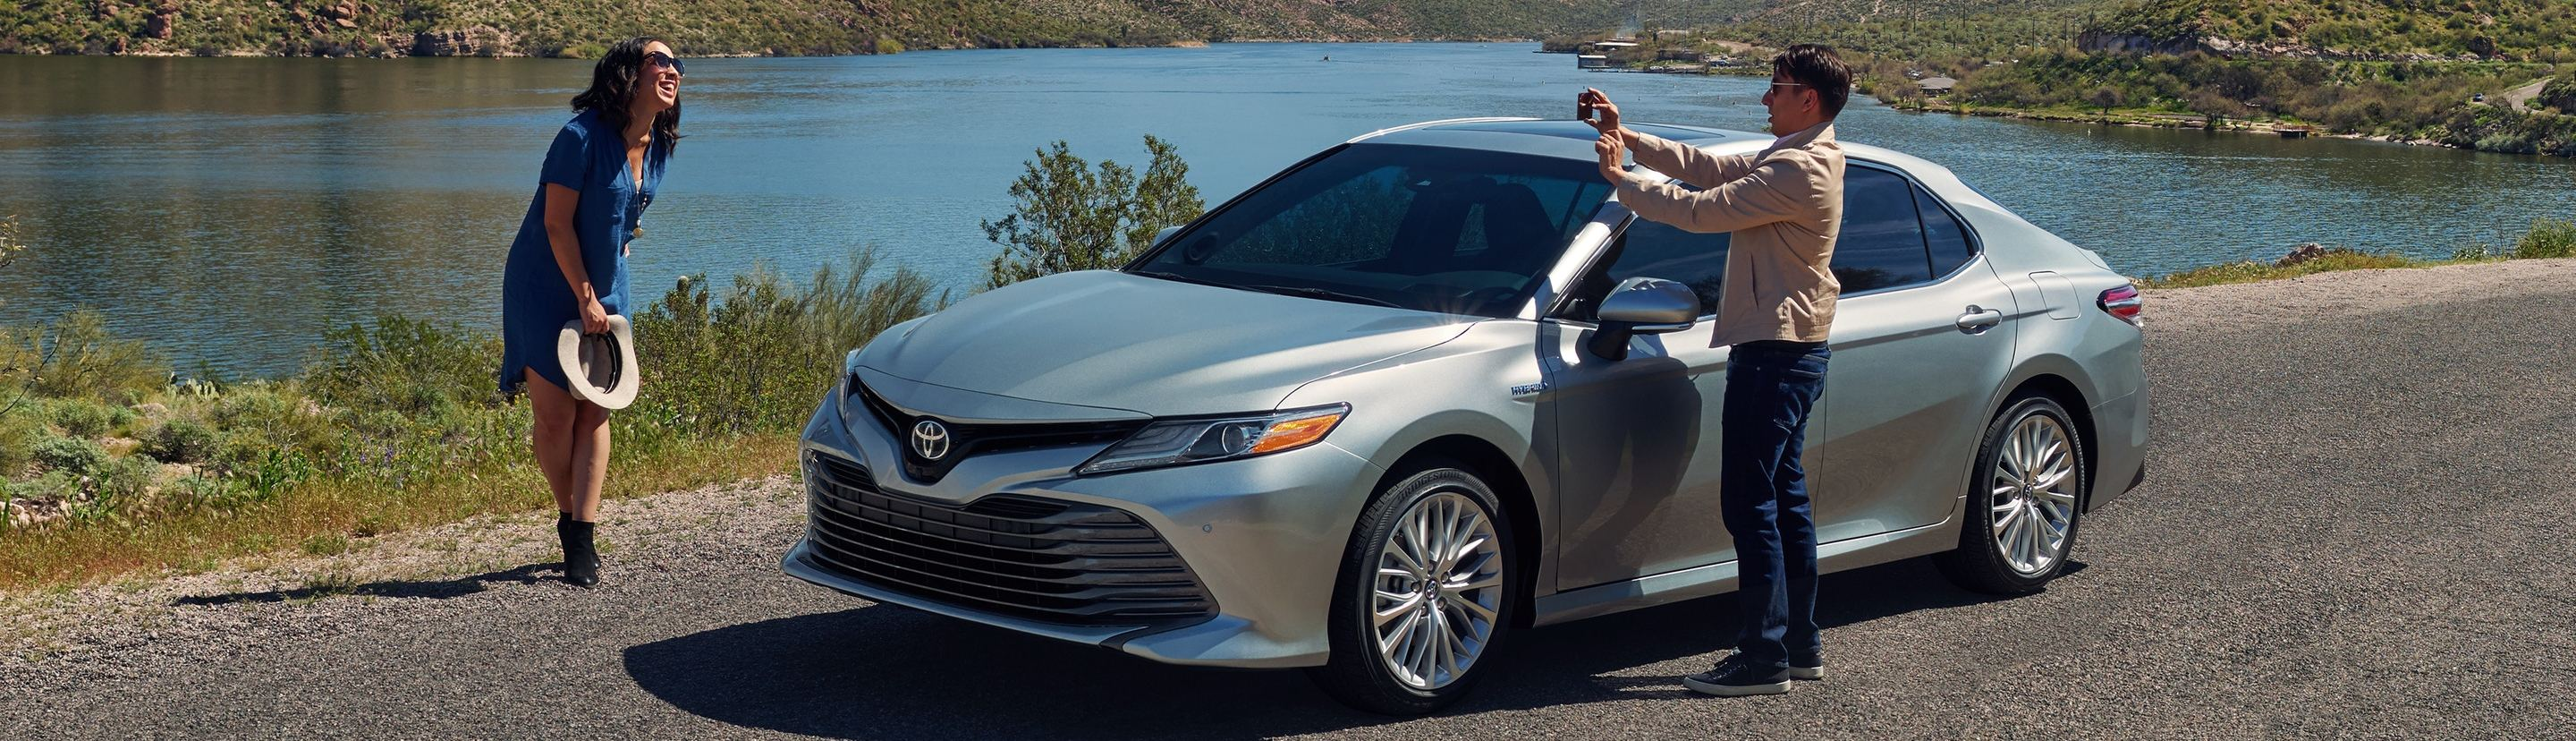 2020 Toyota Camry Leasing in Tinley Park, IL